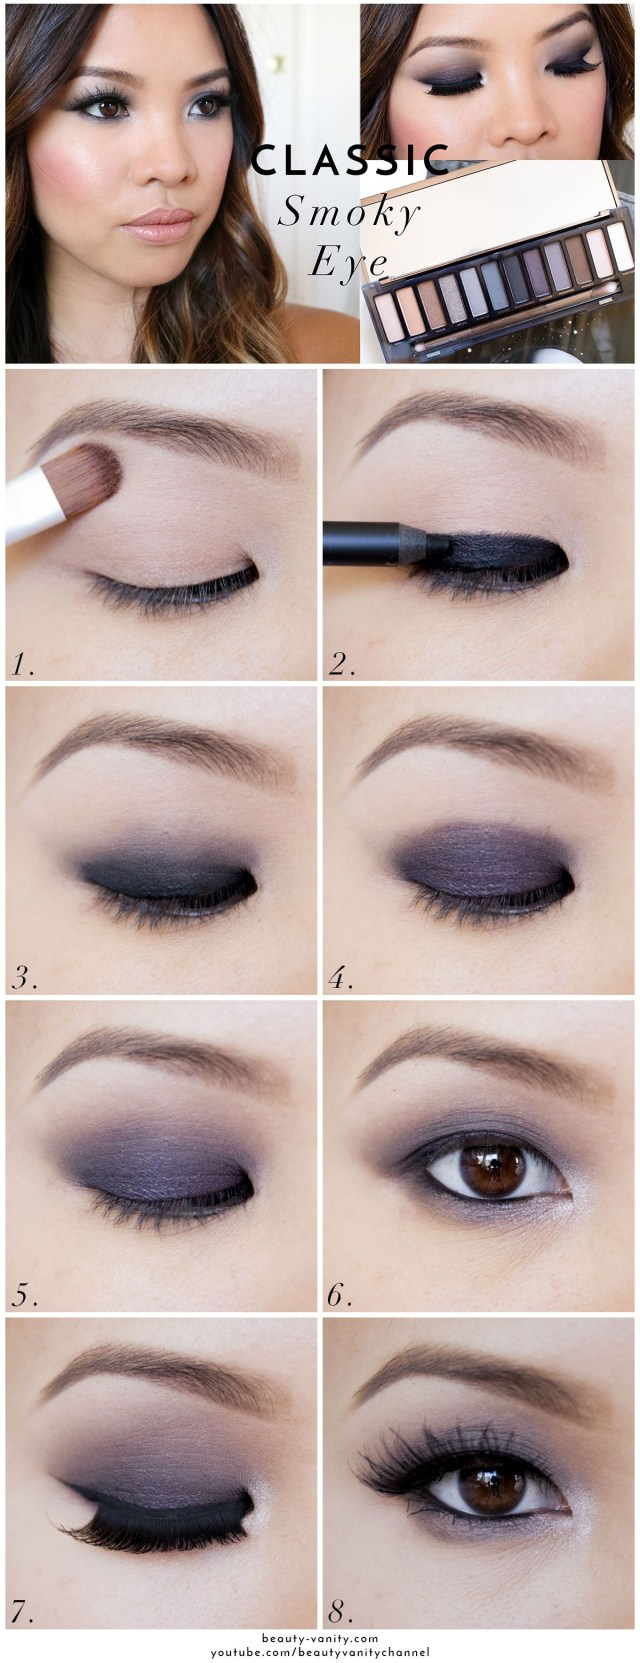 Asian Eyes Makeup The Beauty Vanity Classic Smoky Eye Makeup For Asian Eyes